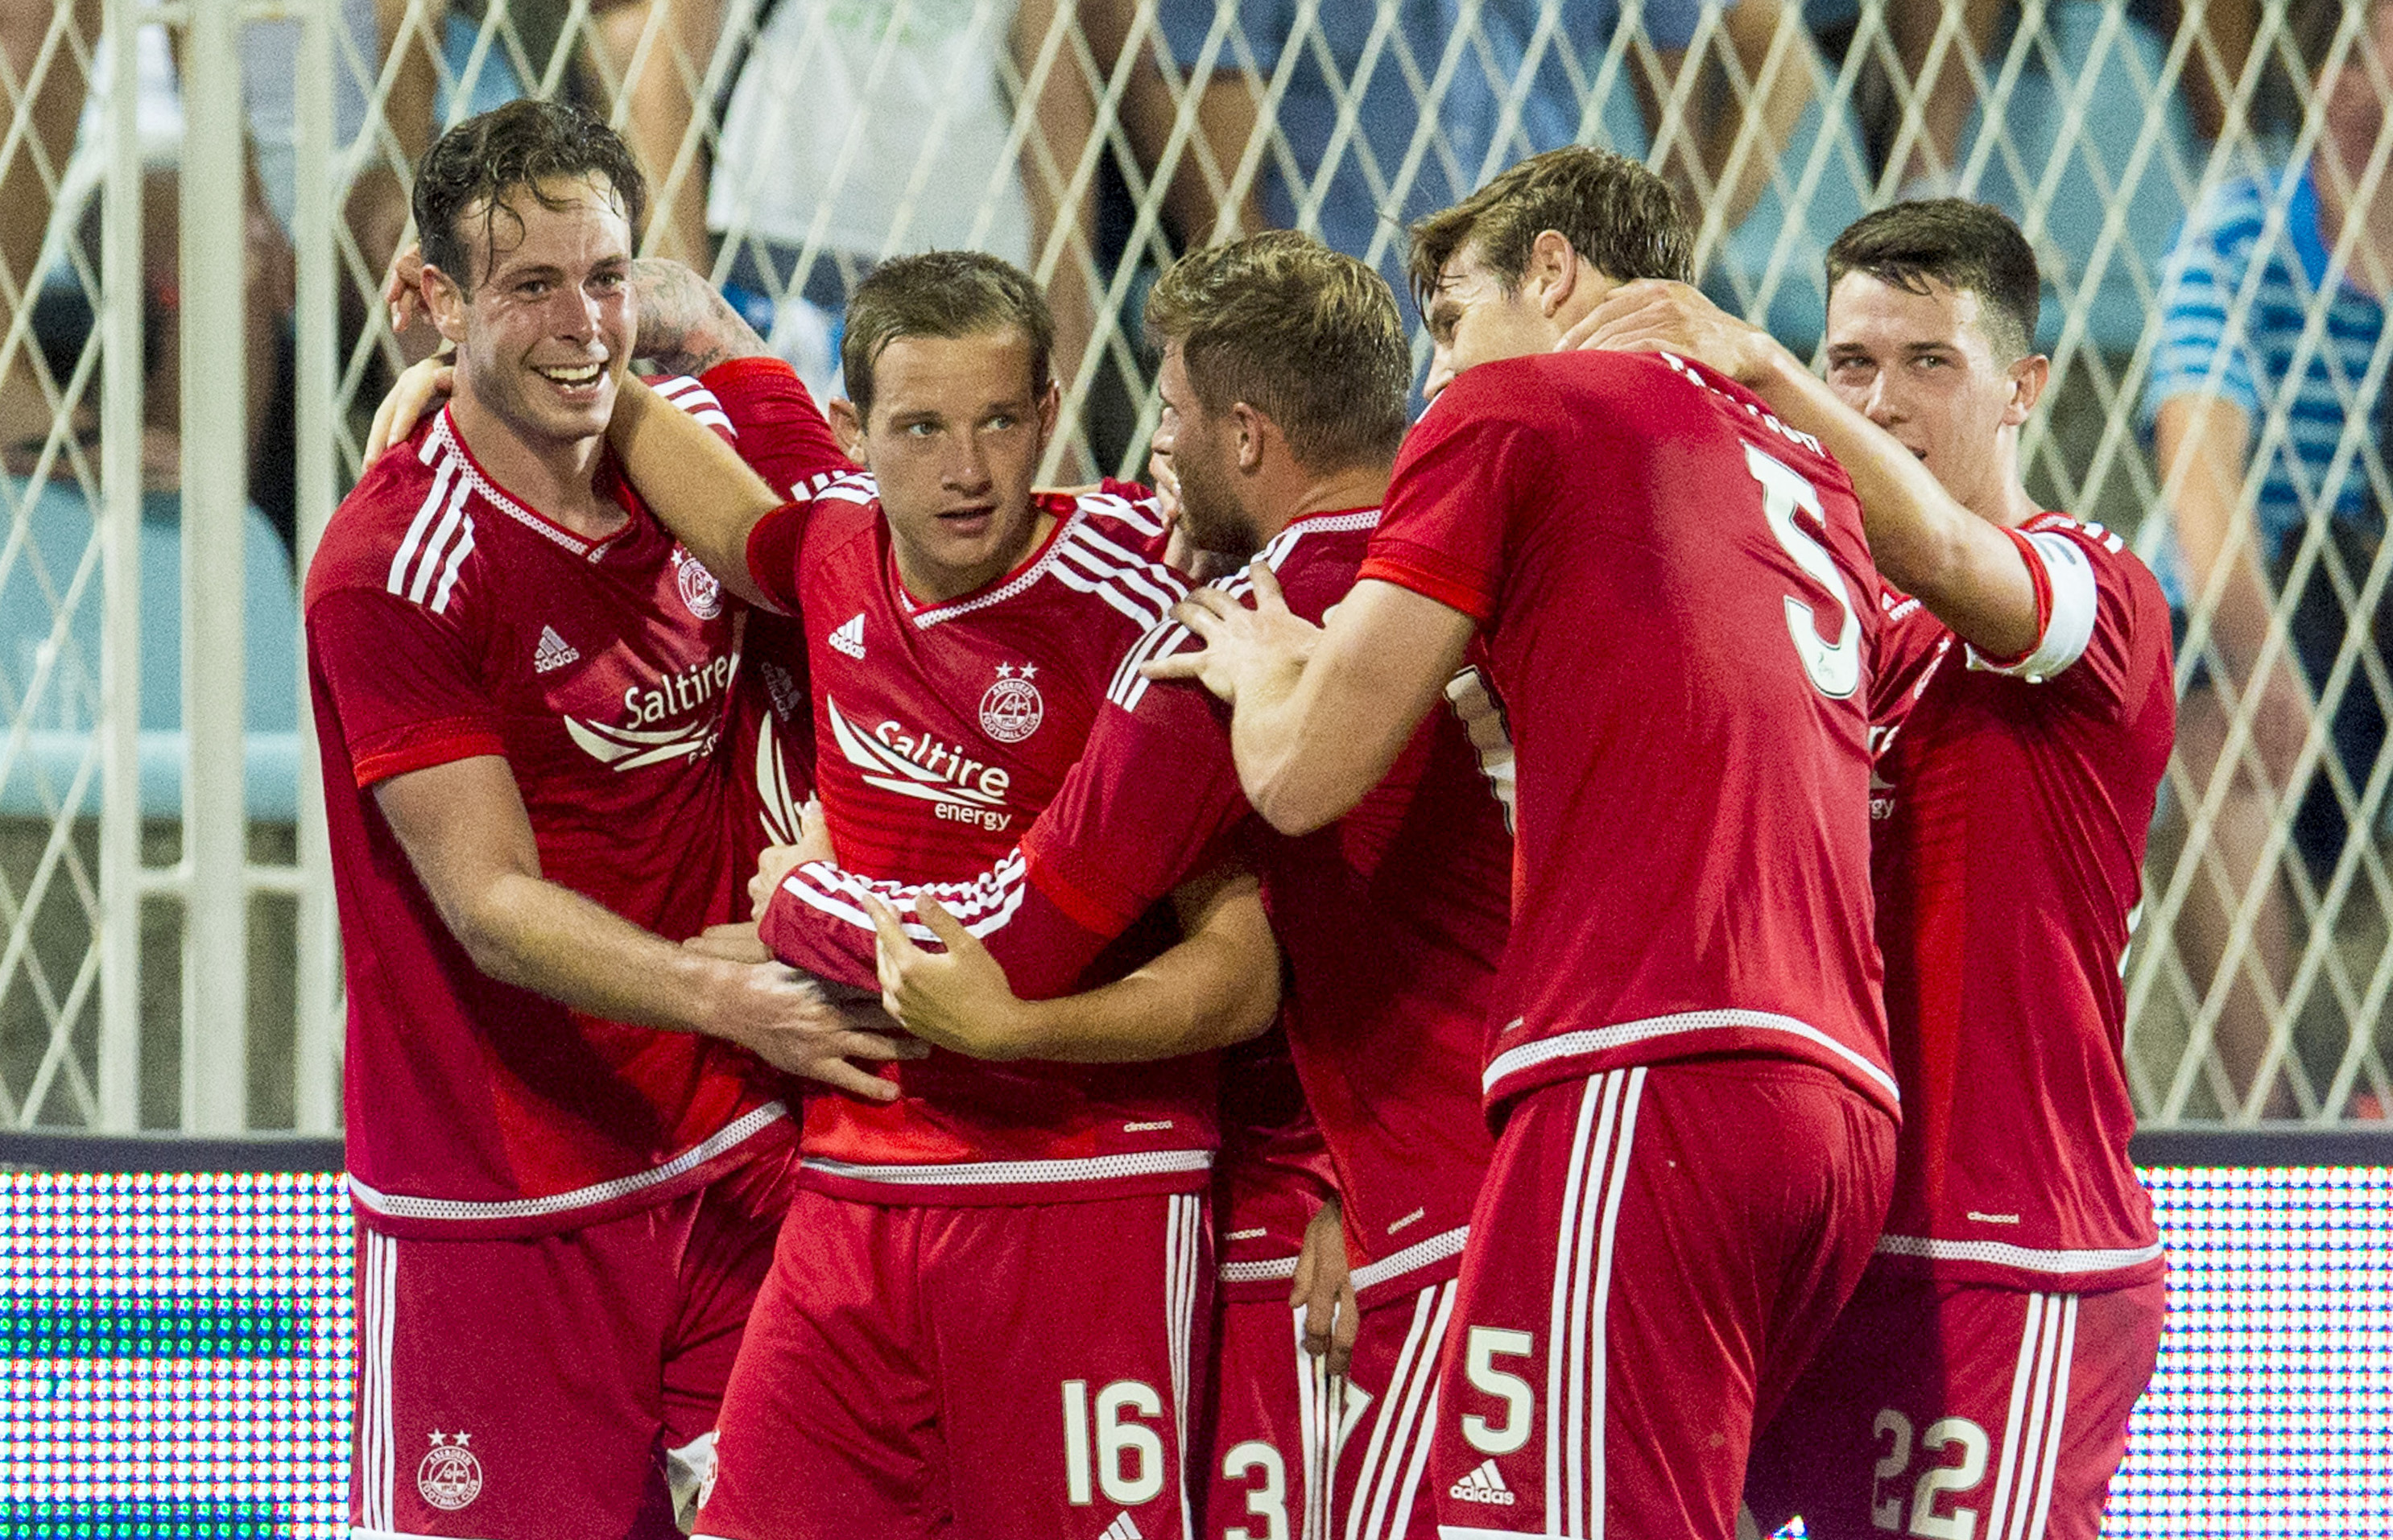 The Dons celebrated a 3-0 victory over HNK Rijeka in Croatia.